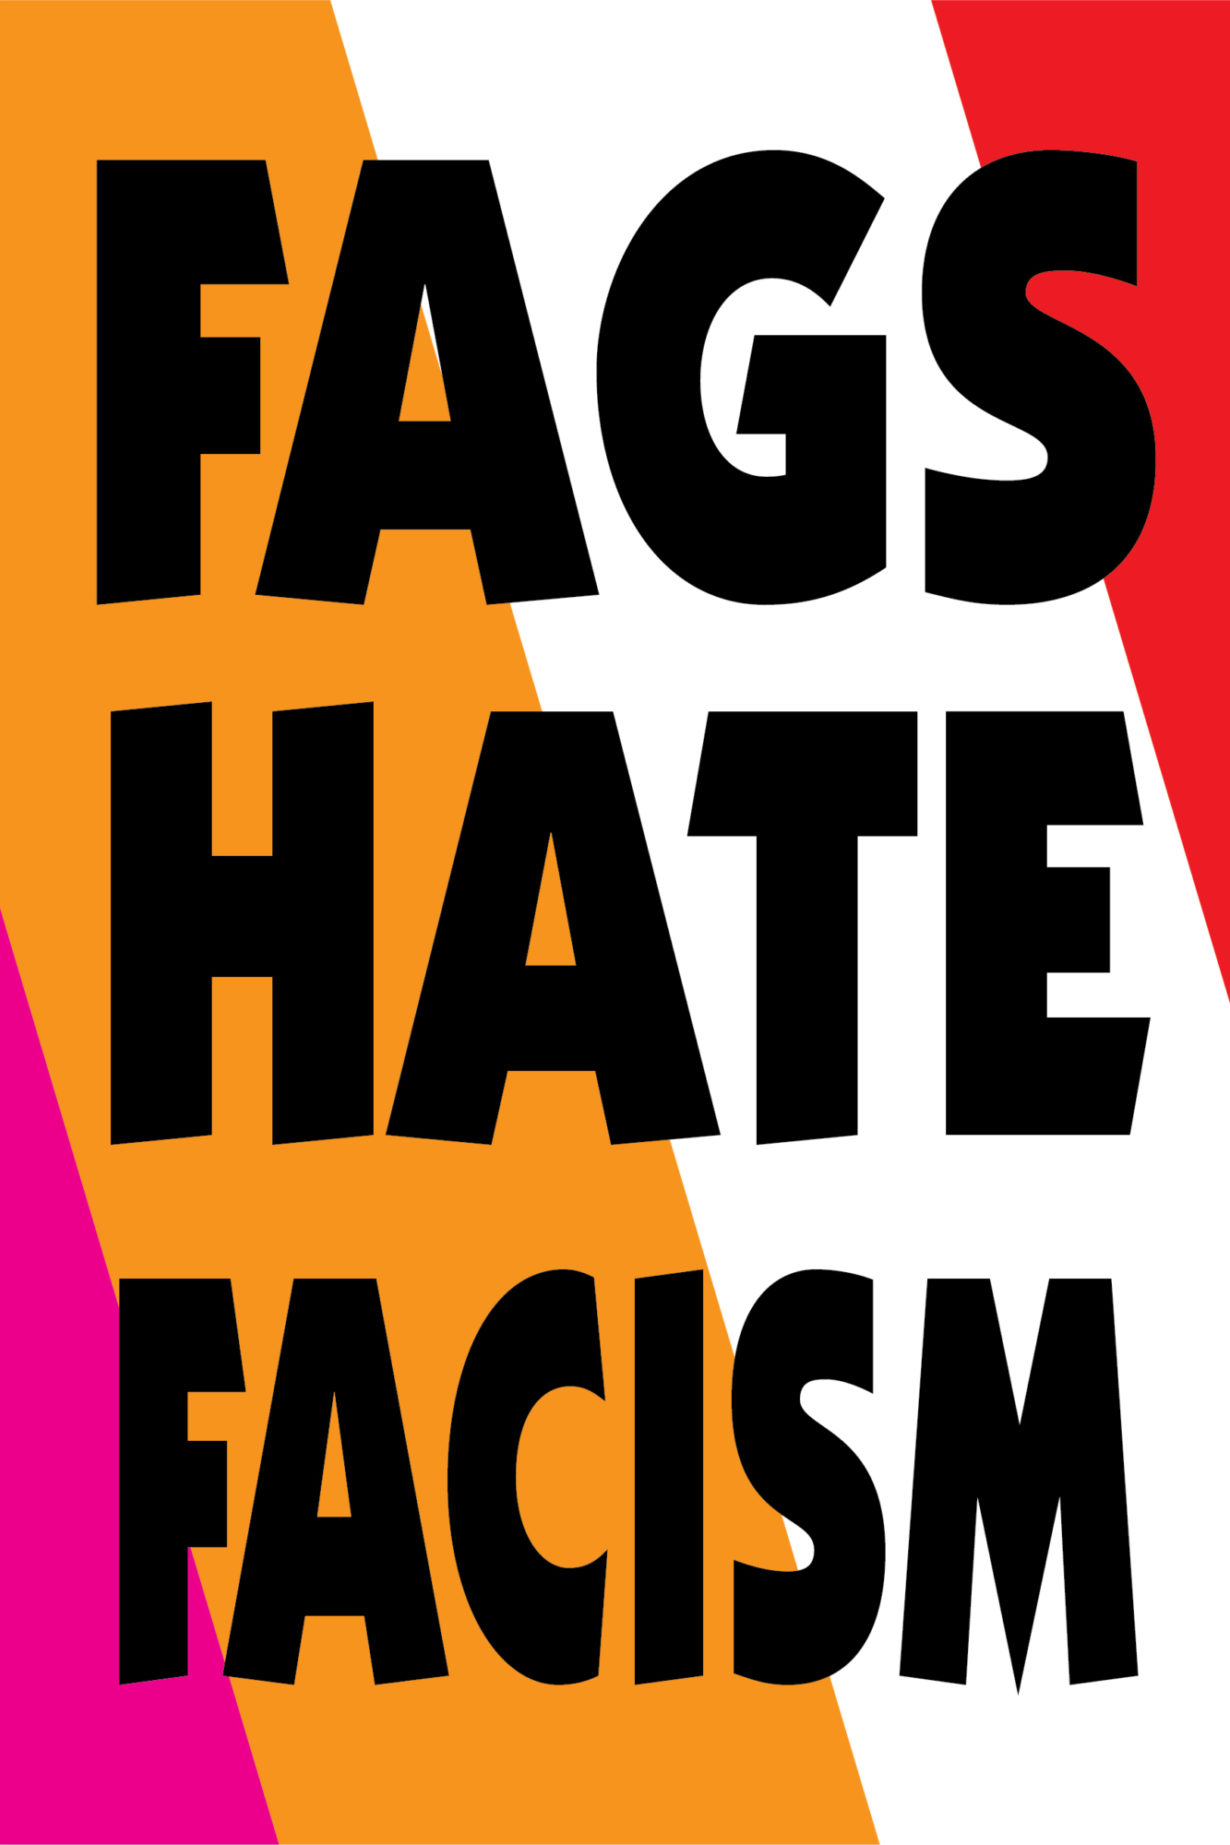 NP_26_50_2017_Fags-Hate-Facism.jpg